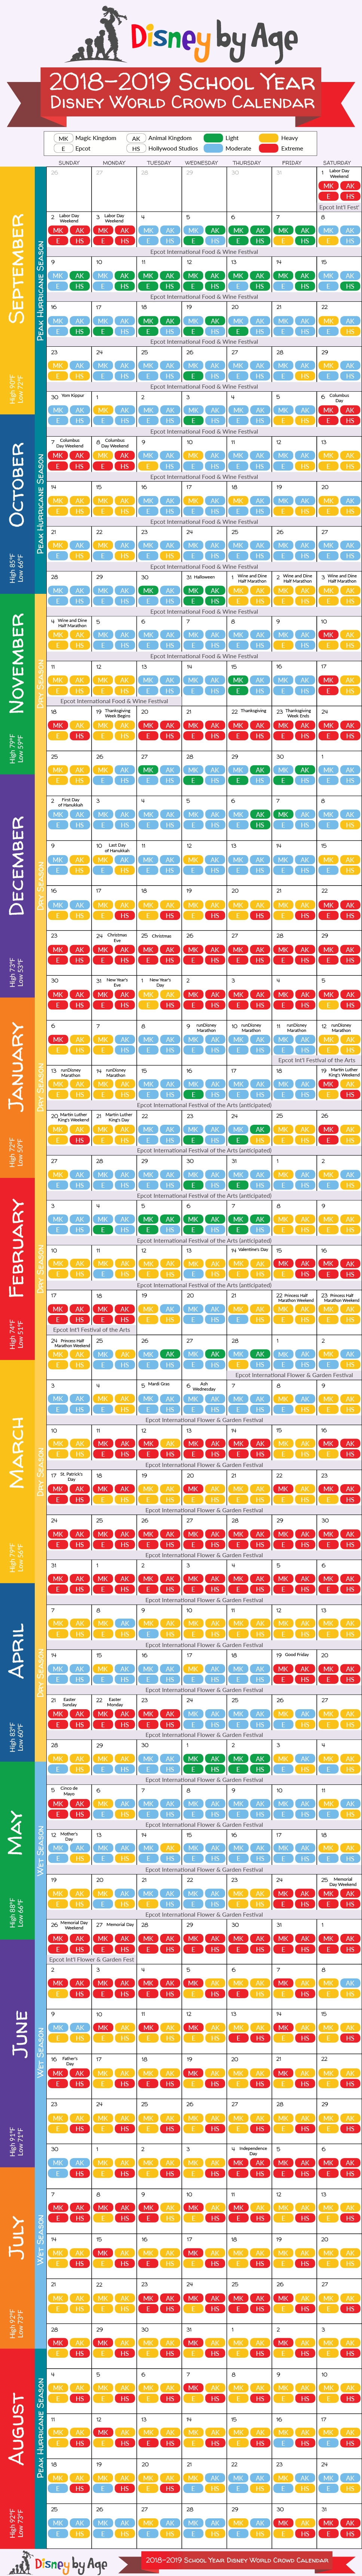 Disney World Crowd Calendar 2018 And 2019-Wdw Crowd Calendar January 2020